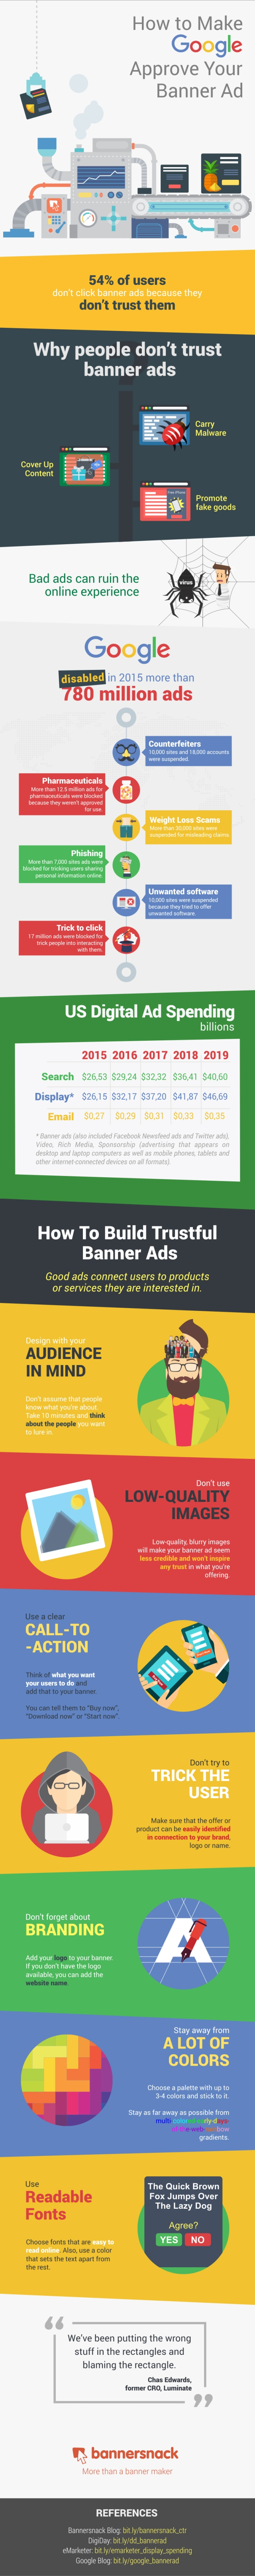 7 Steps to Create Trustworthy Banner Ads That Actually Generate Traffic